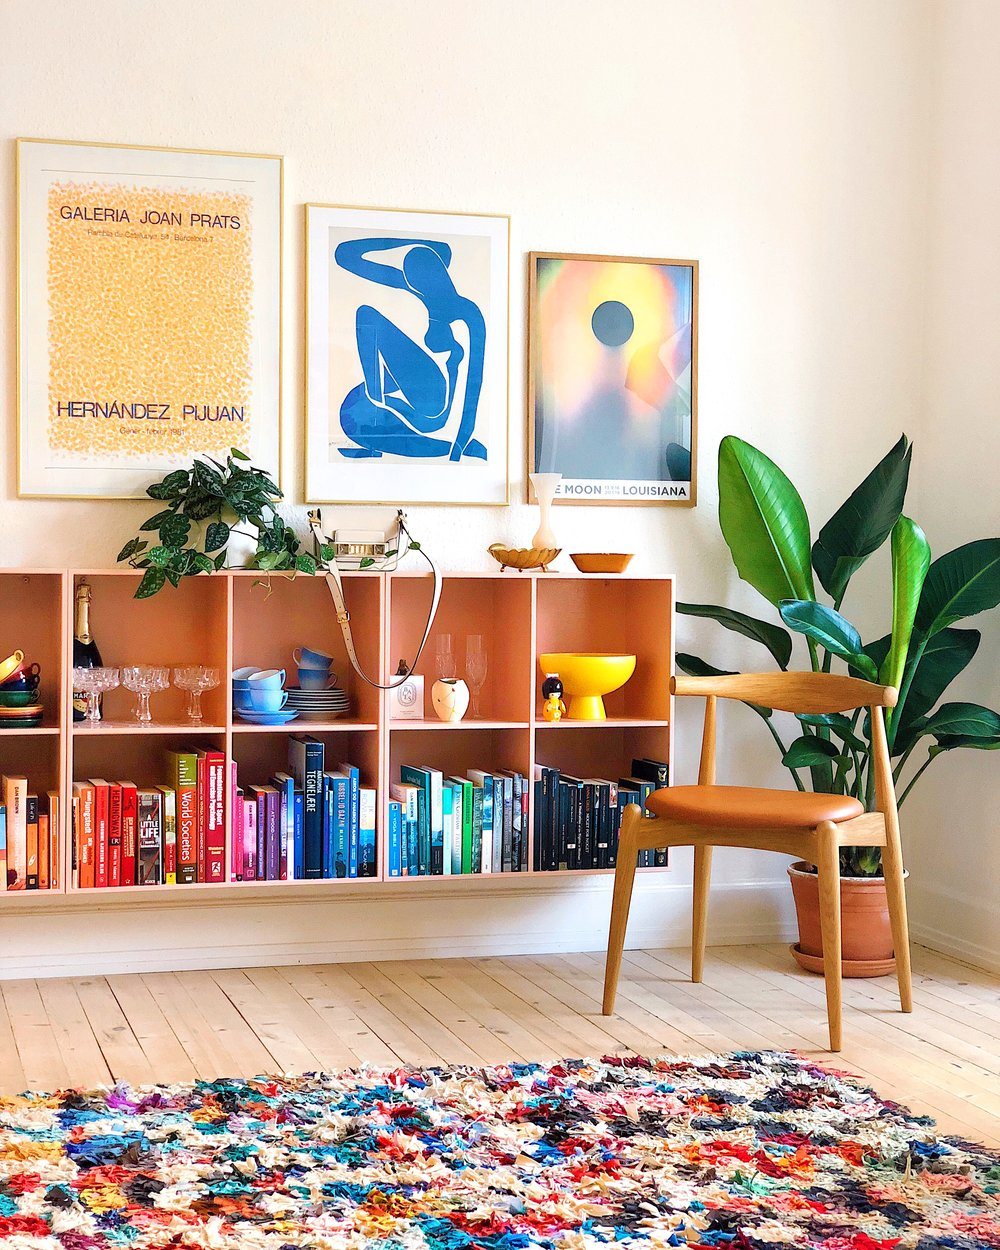 The book cases were found on Danish secondhand app DBA and restored with a new layer of paint, while the art prints are a mixture of museum purchases and vintage finds. I generally buy my art prints in thrift stores, via local specialists and social media or through specialized galleries abroad, depending on the exclusivity.  The Pijuan-print on the left was, for example, bought through an Irish gallery. The rug is a vintage Moroccan boucherouite, of which we have two in total, found via the secondhand app Tradono, and the smaller items are primarily flea market finds.